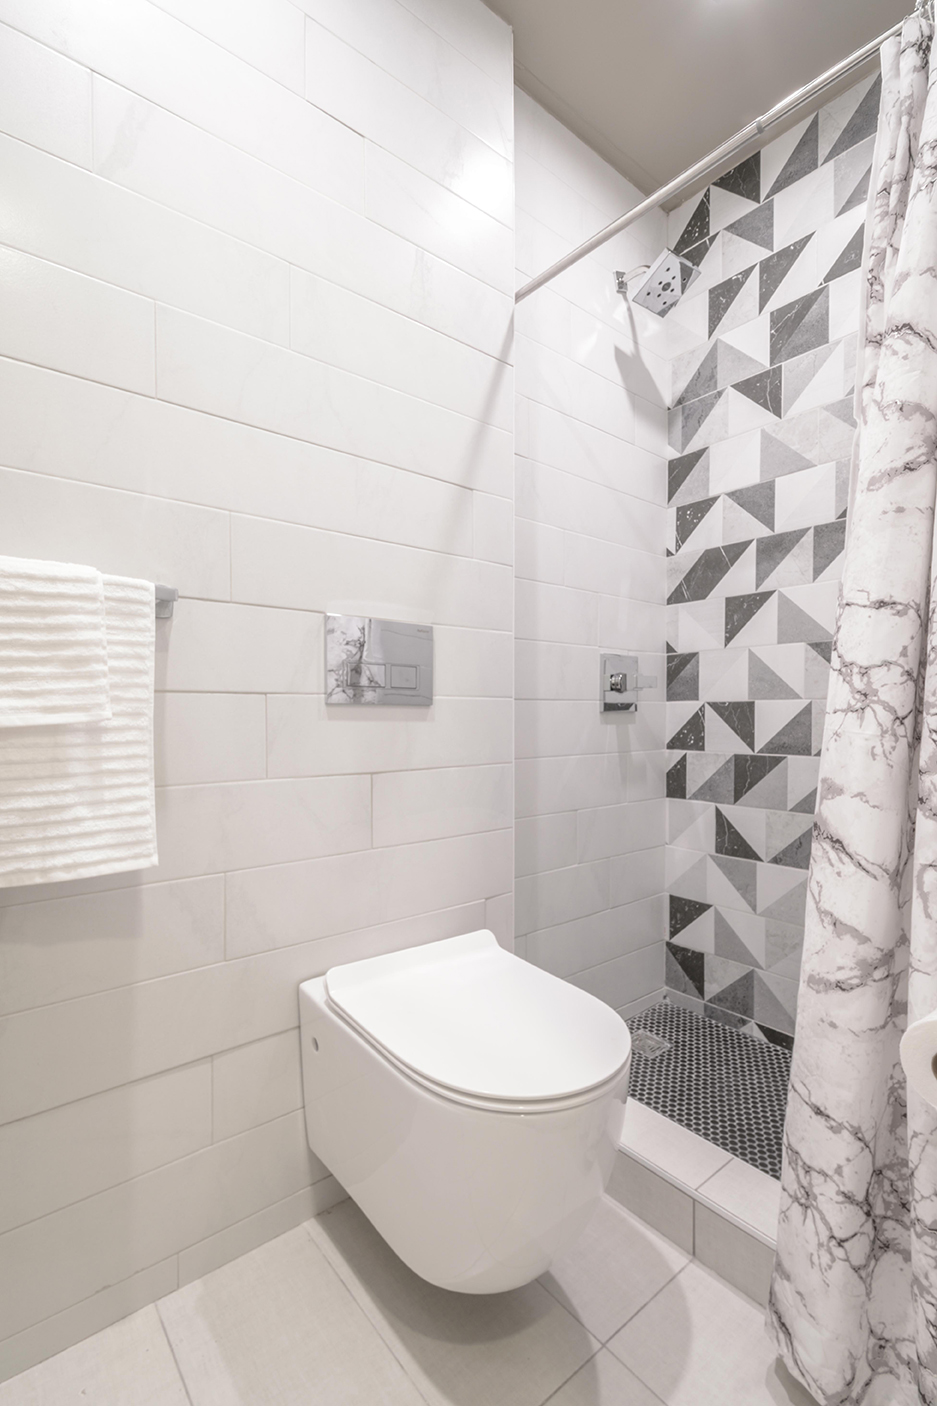 Private Furnished Bedroom In Shared Apartment. Modern 3 Bed 2 Bath, Flexible Lease